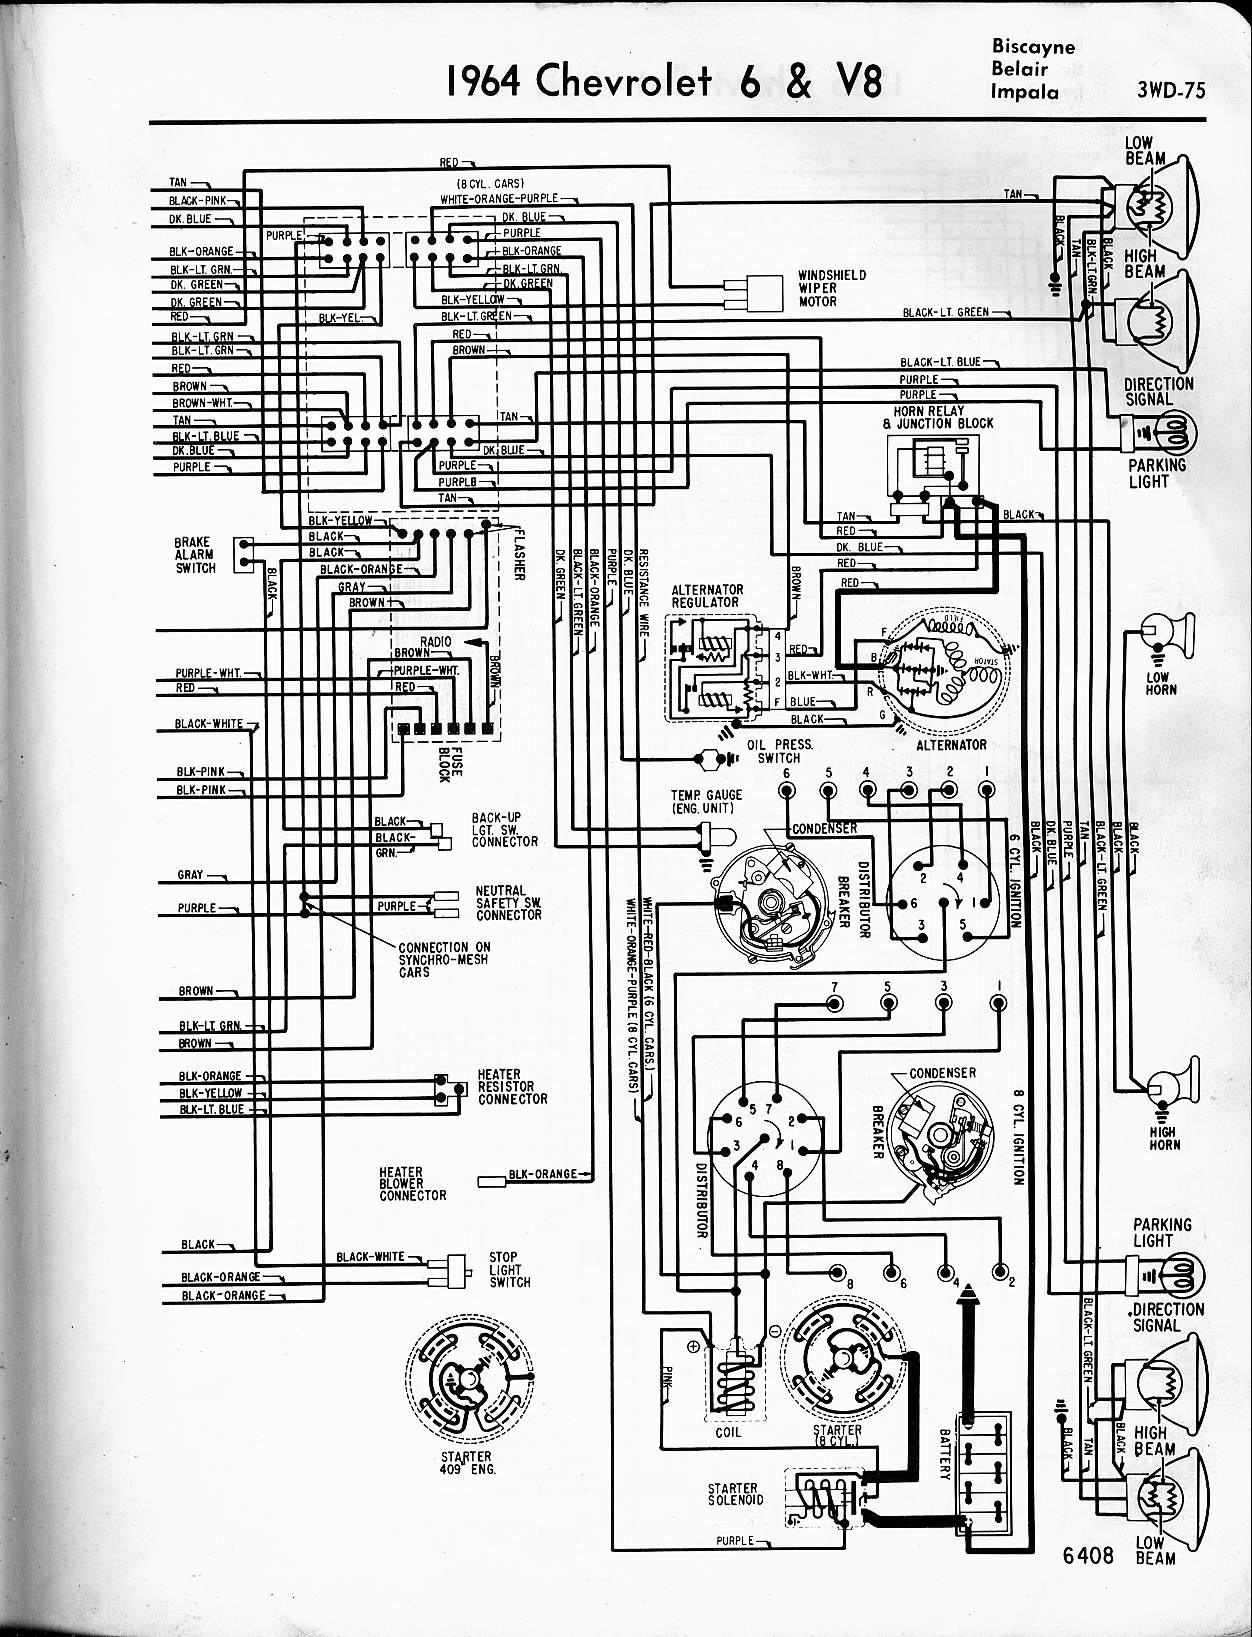 MWireChev64_3WD 075 57 65 chevy wiring diagrams 2001 chevy impala wiring harness diagram at sewacar.co